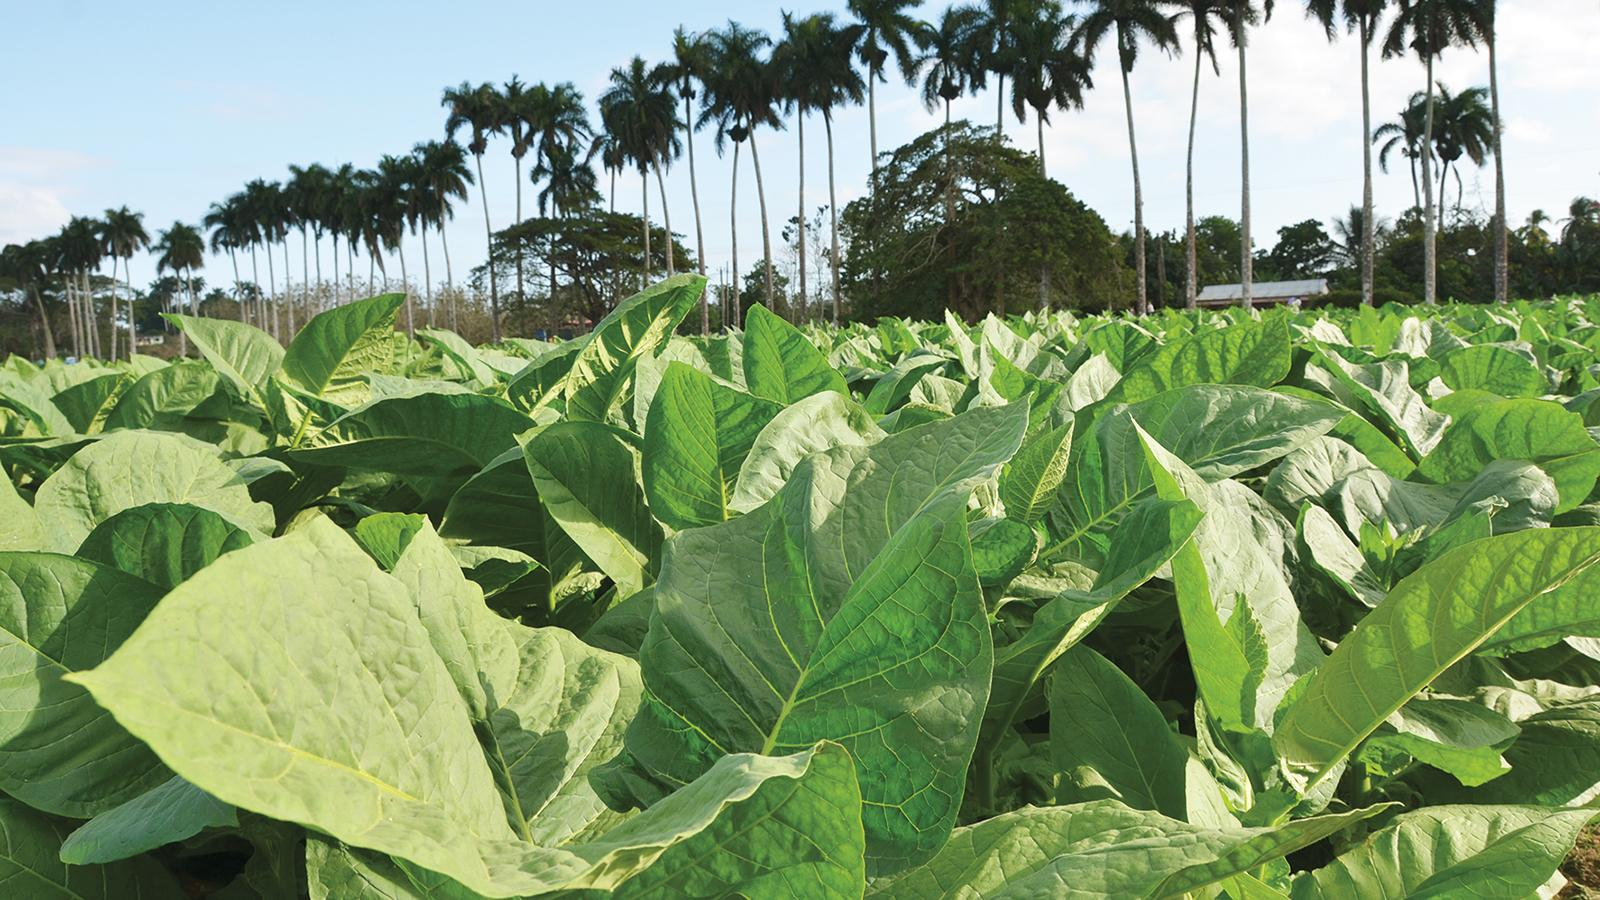 Planting Season Officially Opens in Cuba